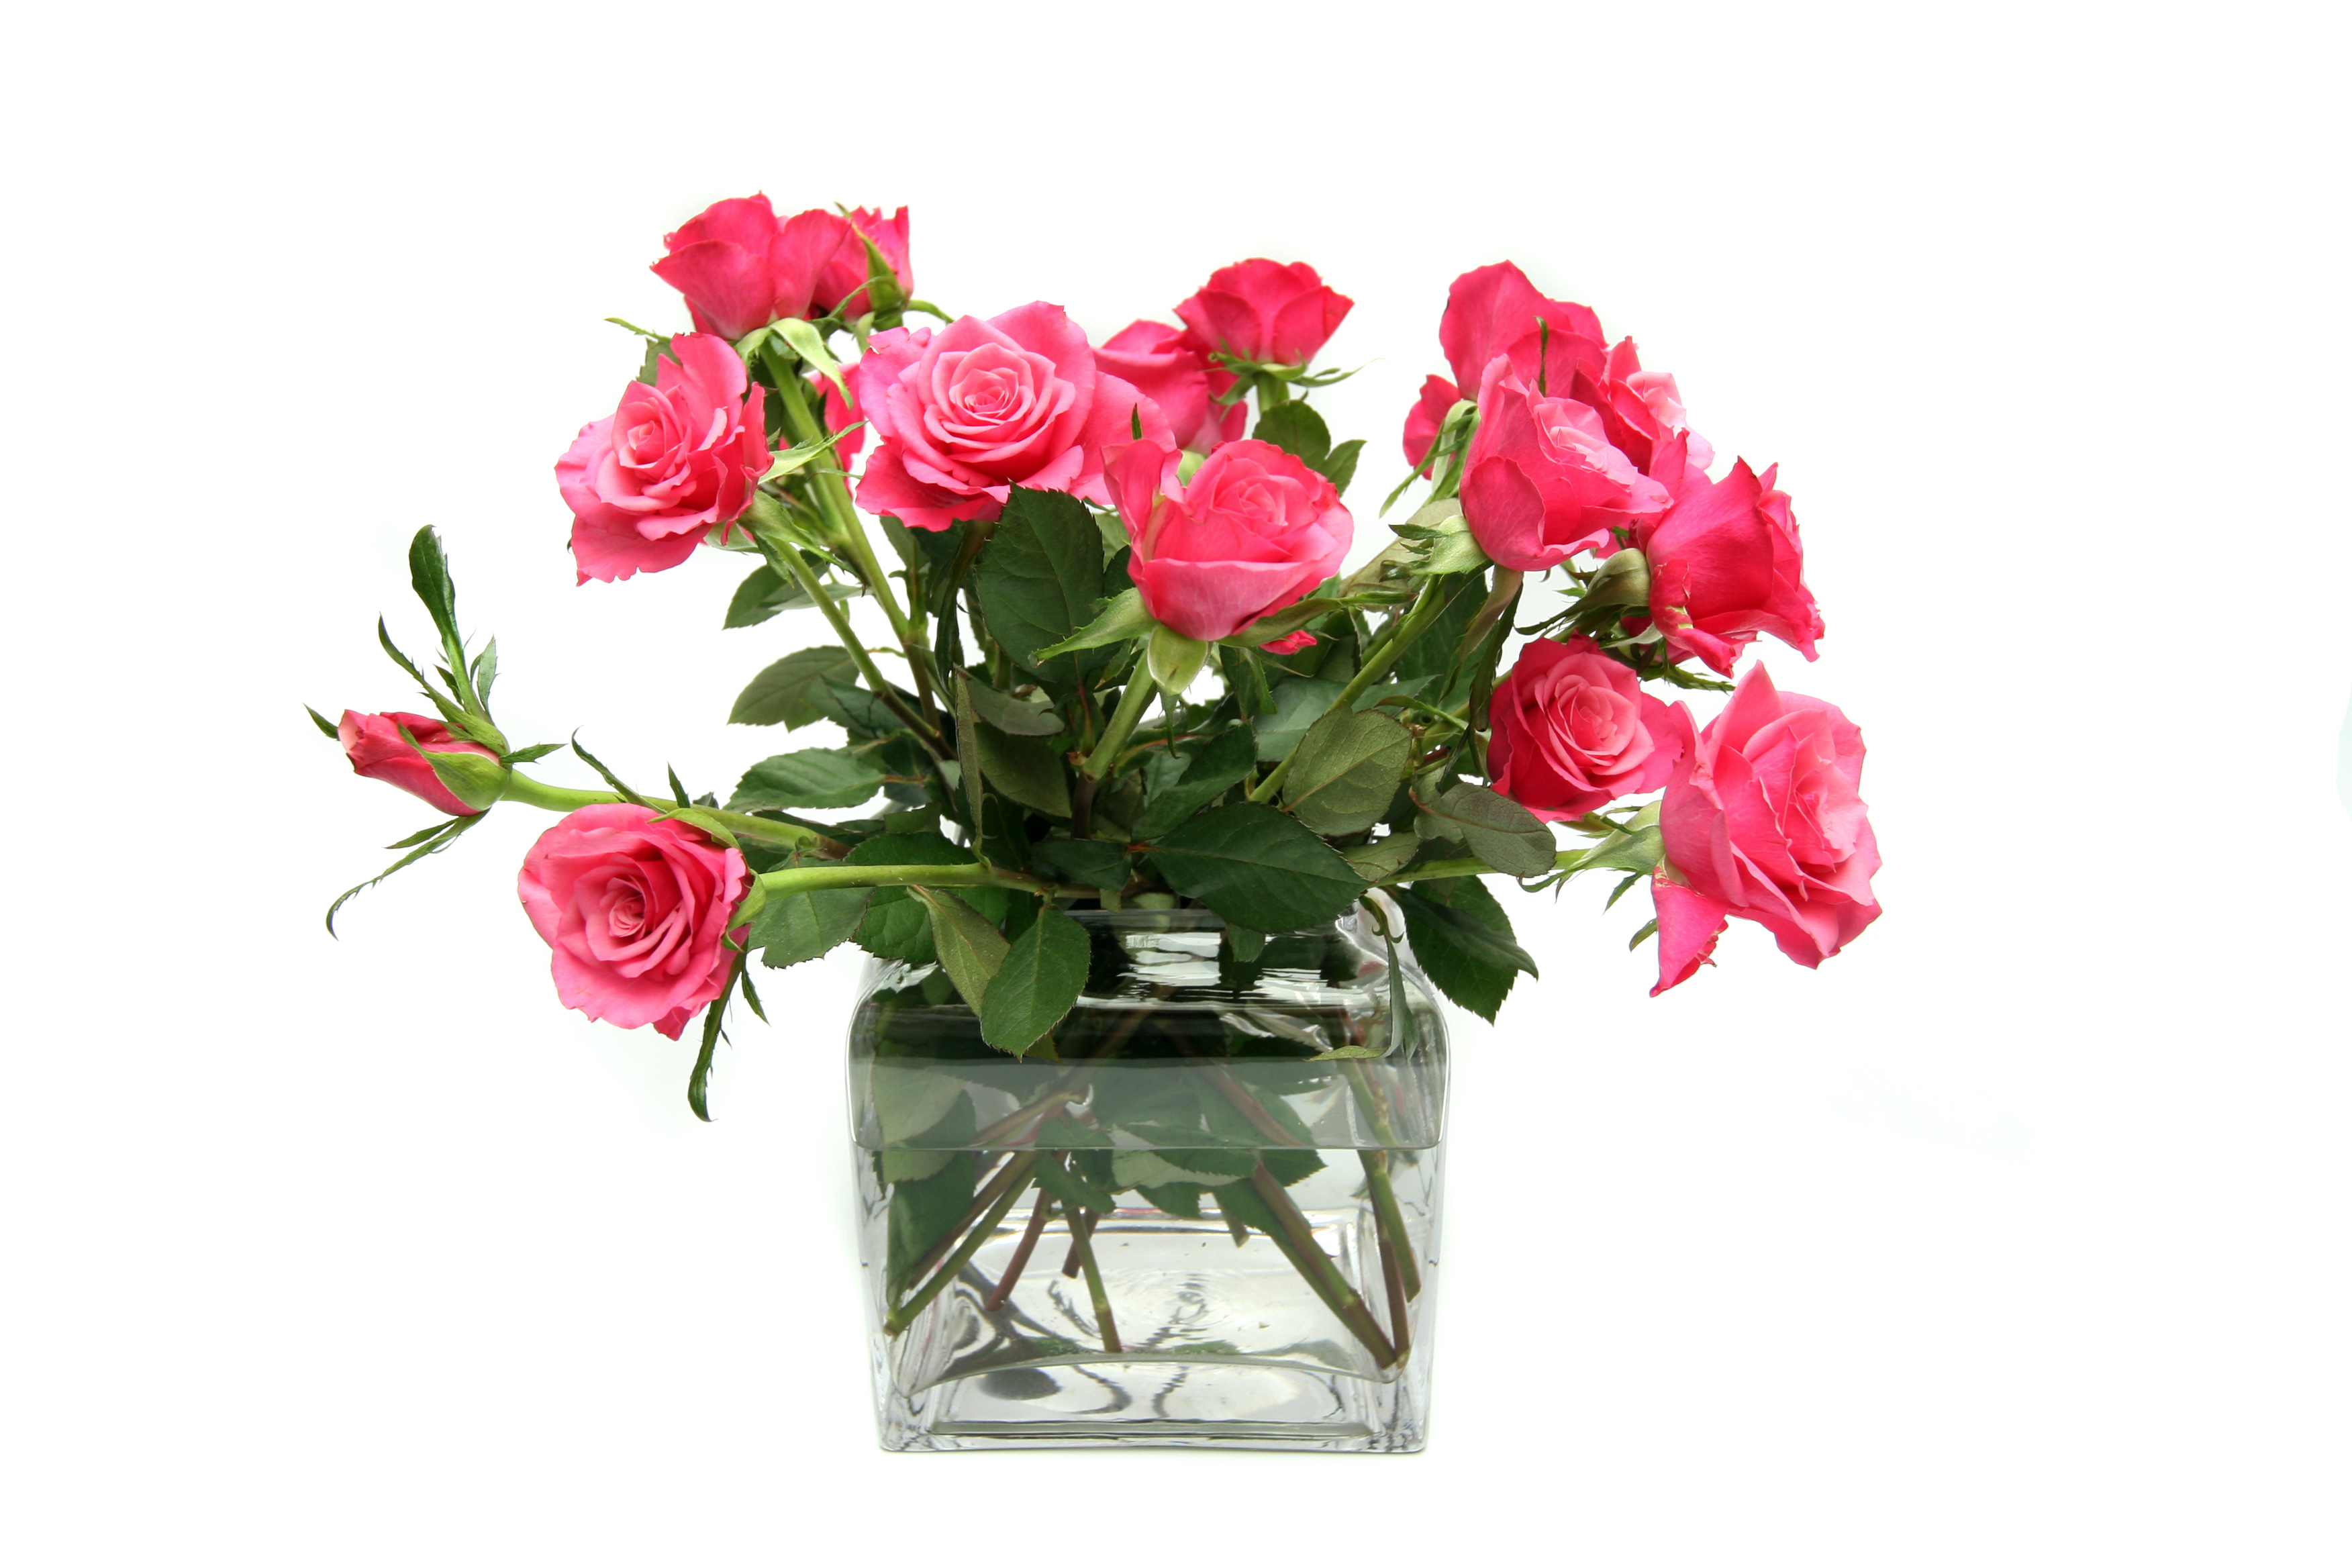 Choose the best florist for Valentine's Day flowers